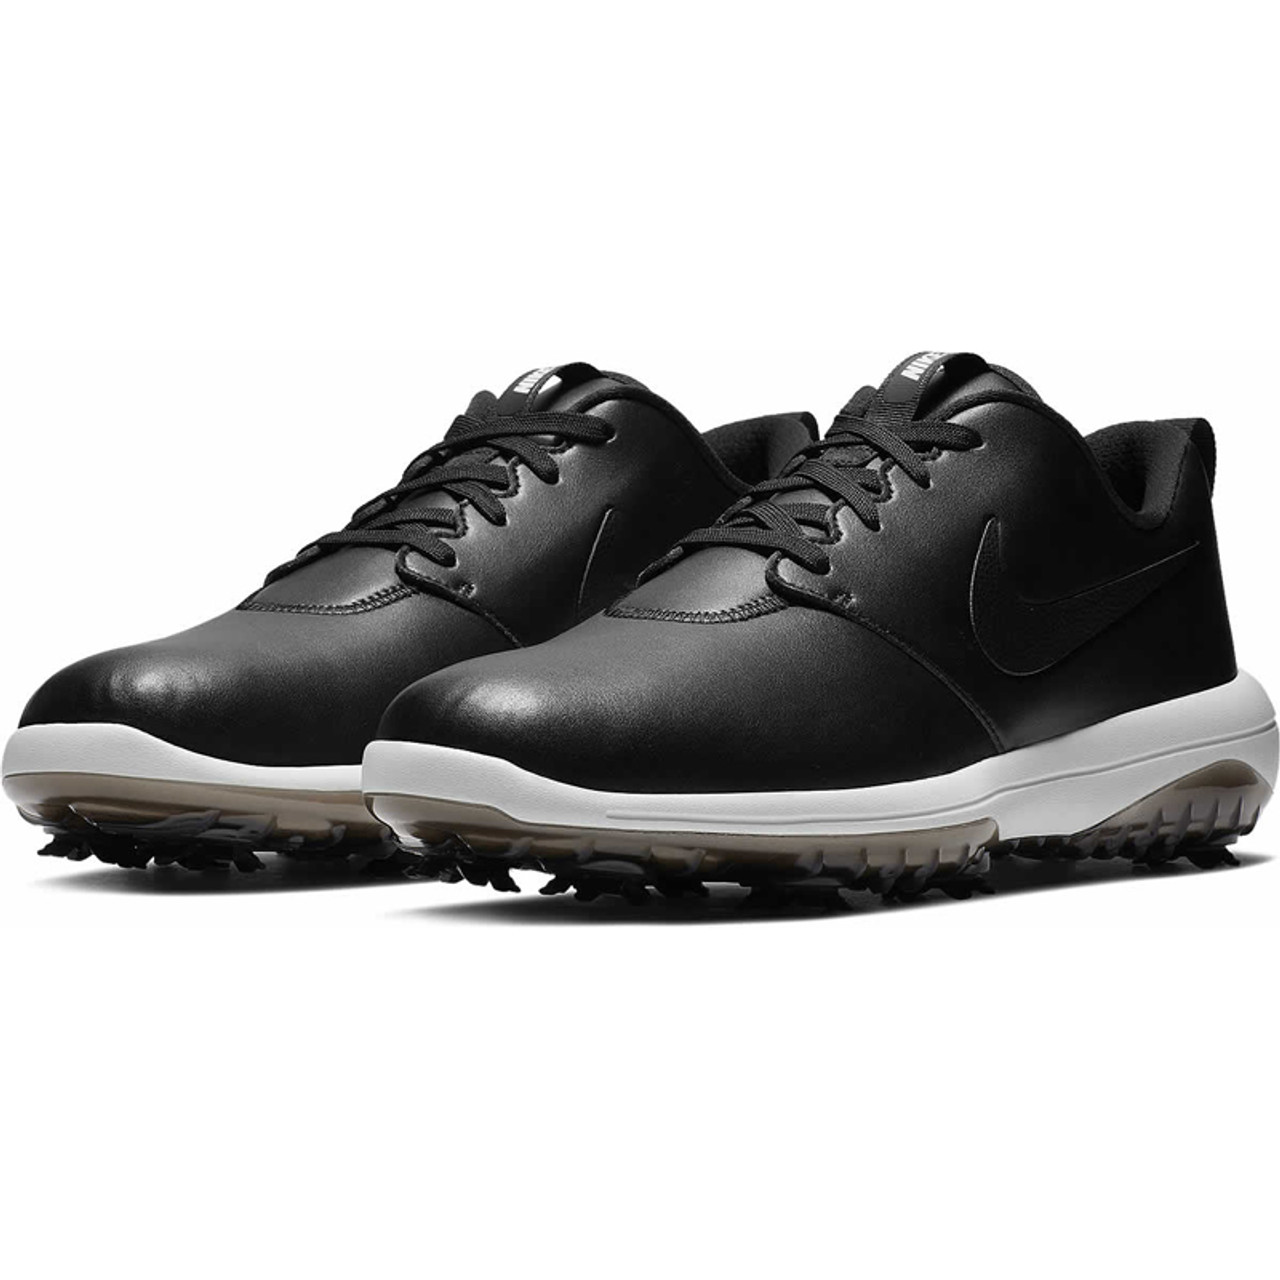 0b6bc44ea68b ... Nike Roshe G Tour Golf Shoes. Previous. Black   Summit White